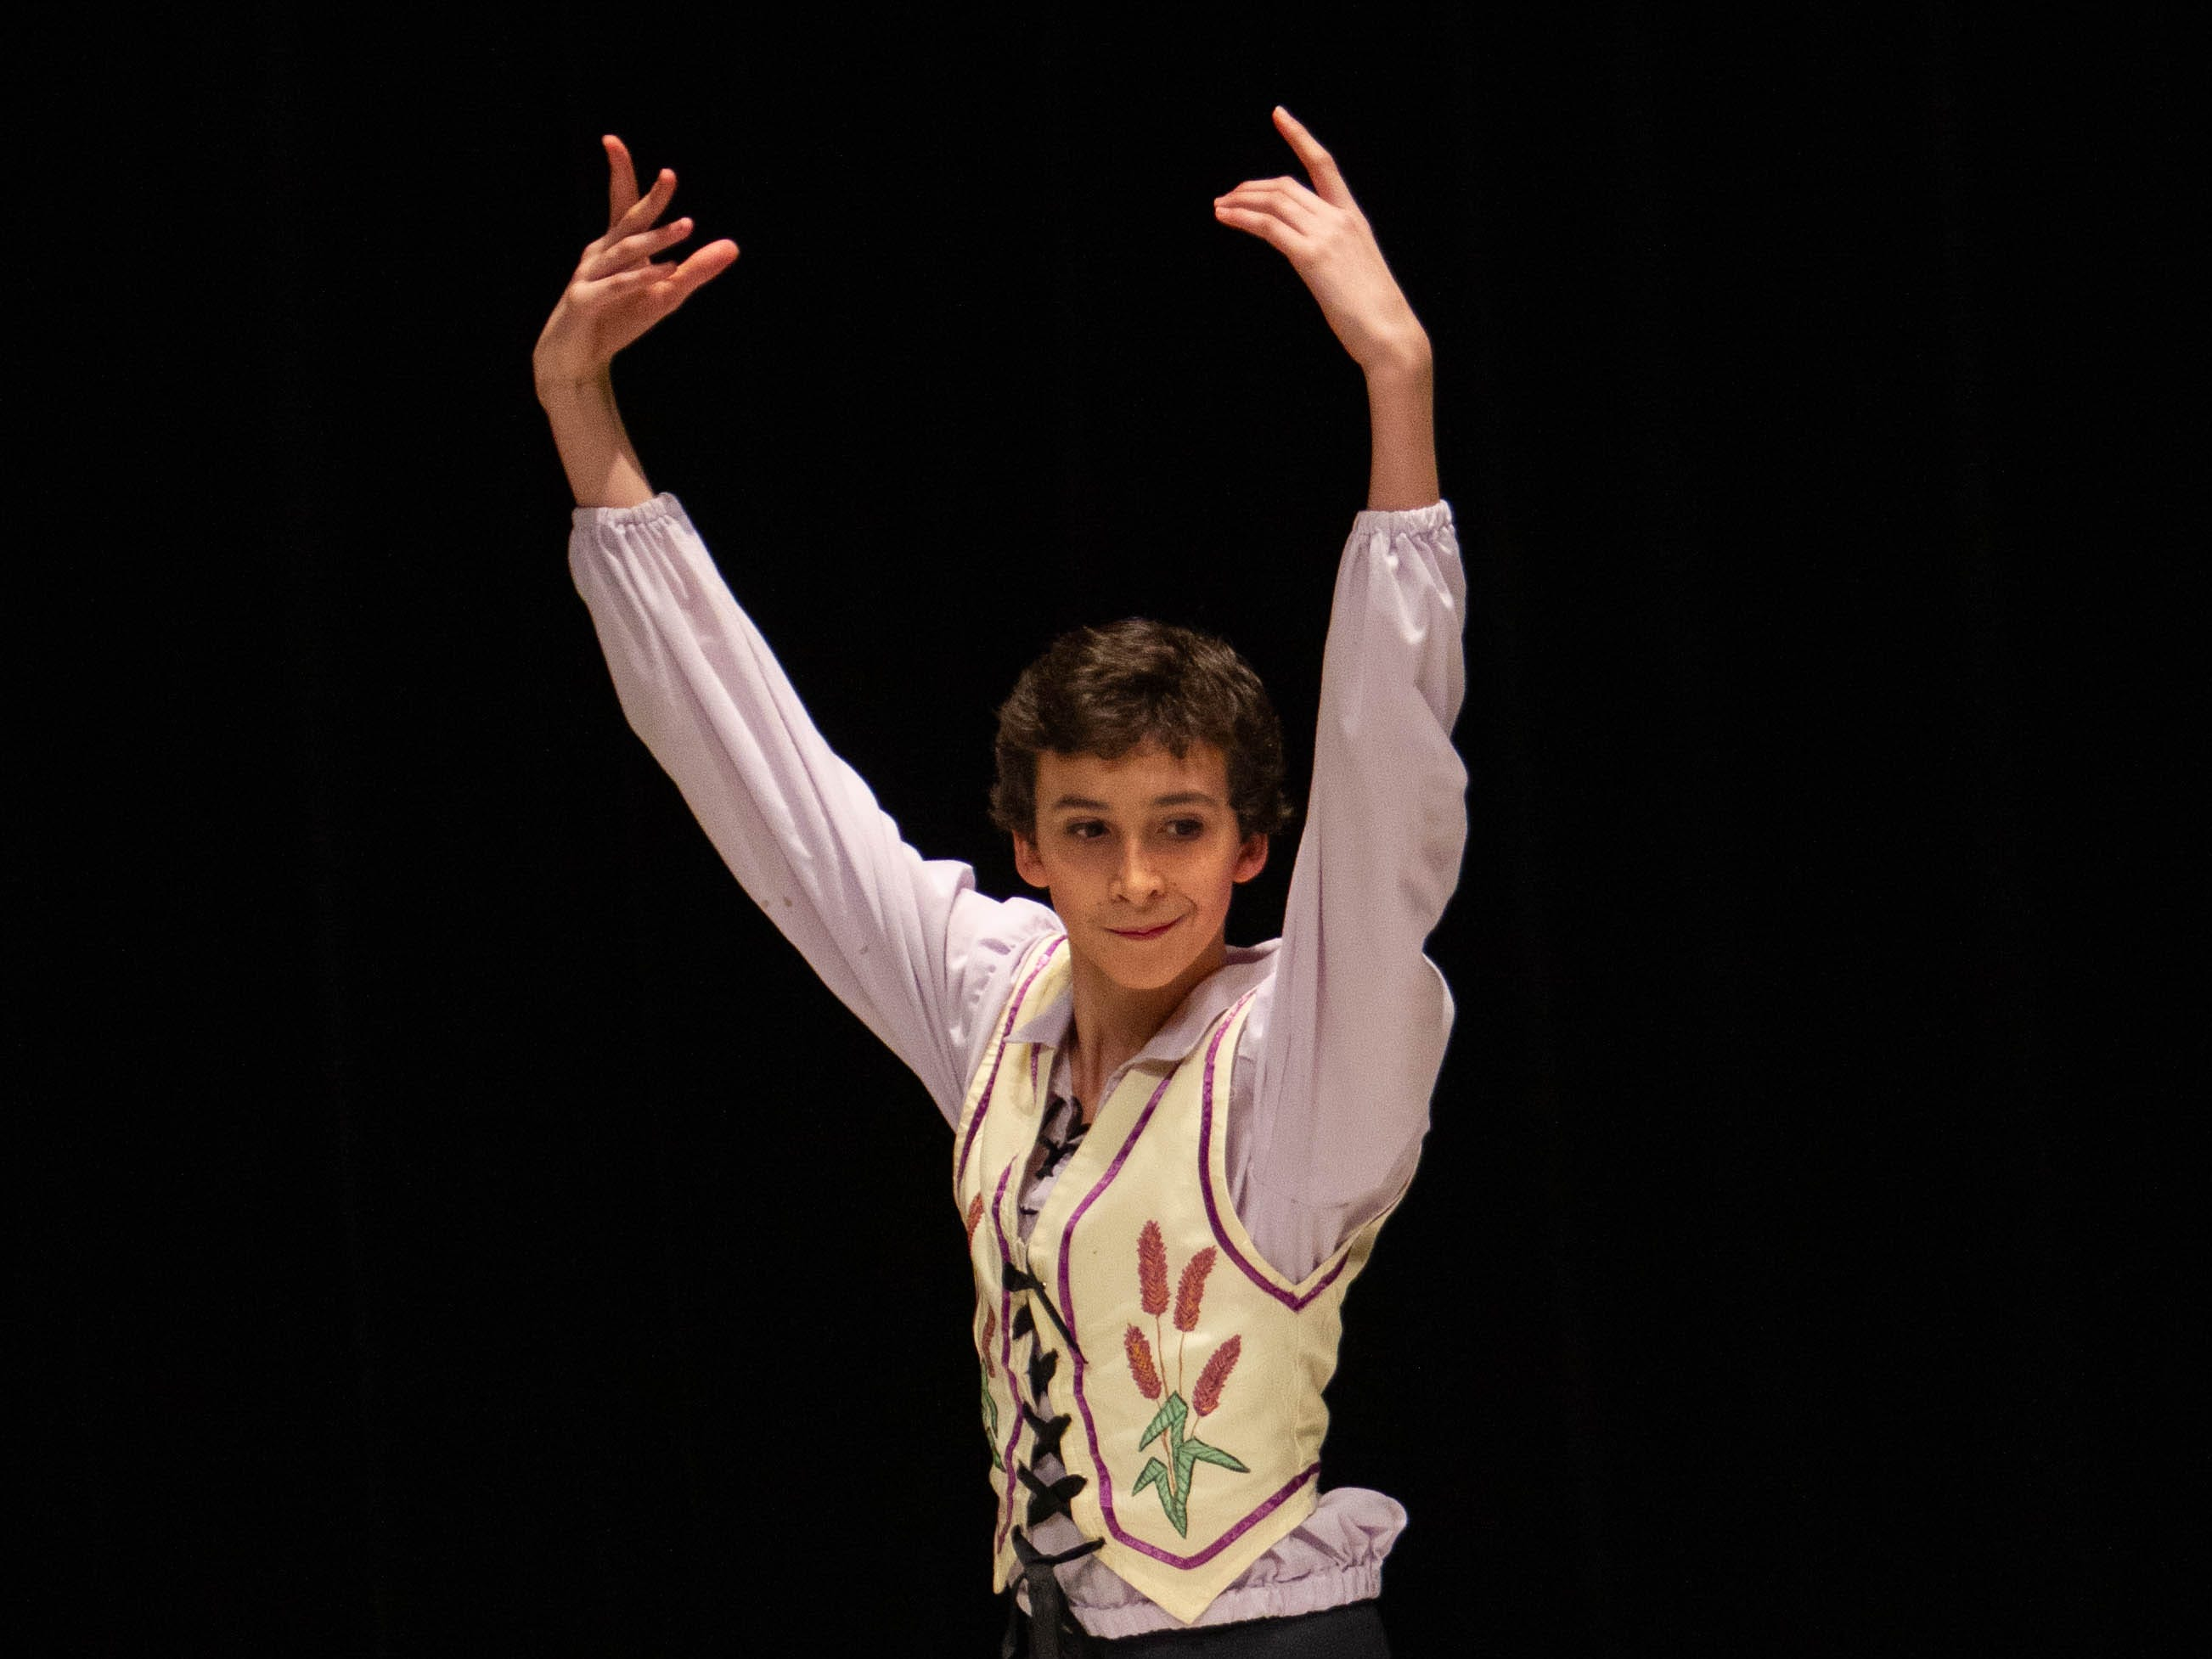 Robbie Read competes at the inaugural year of Grand Jeté dance competition in the Junior Ballet division, at the Governor's School for the Arts and Humanities, on Saturday, March 2, 2019.